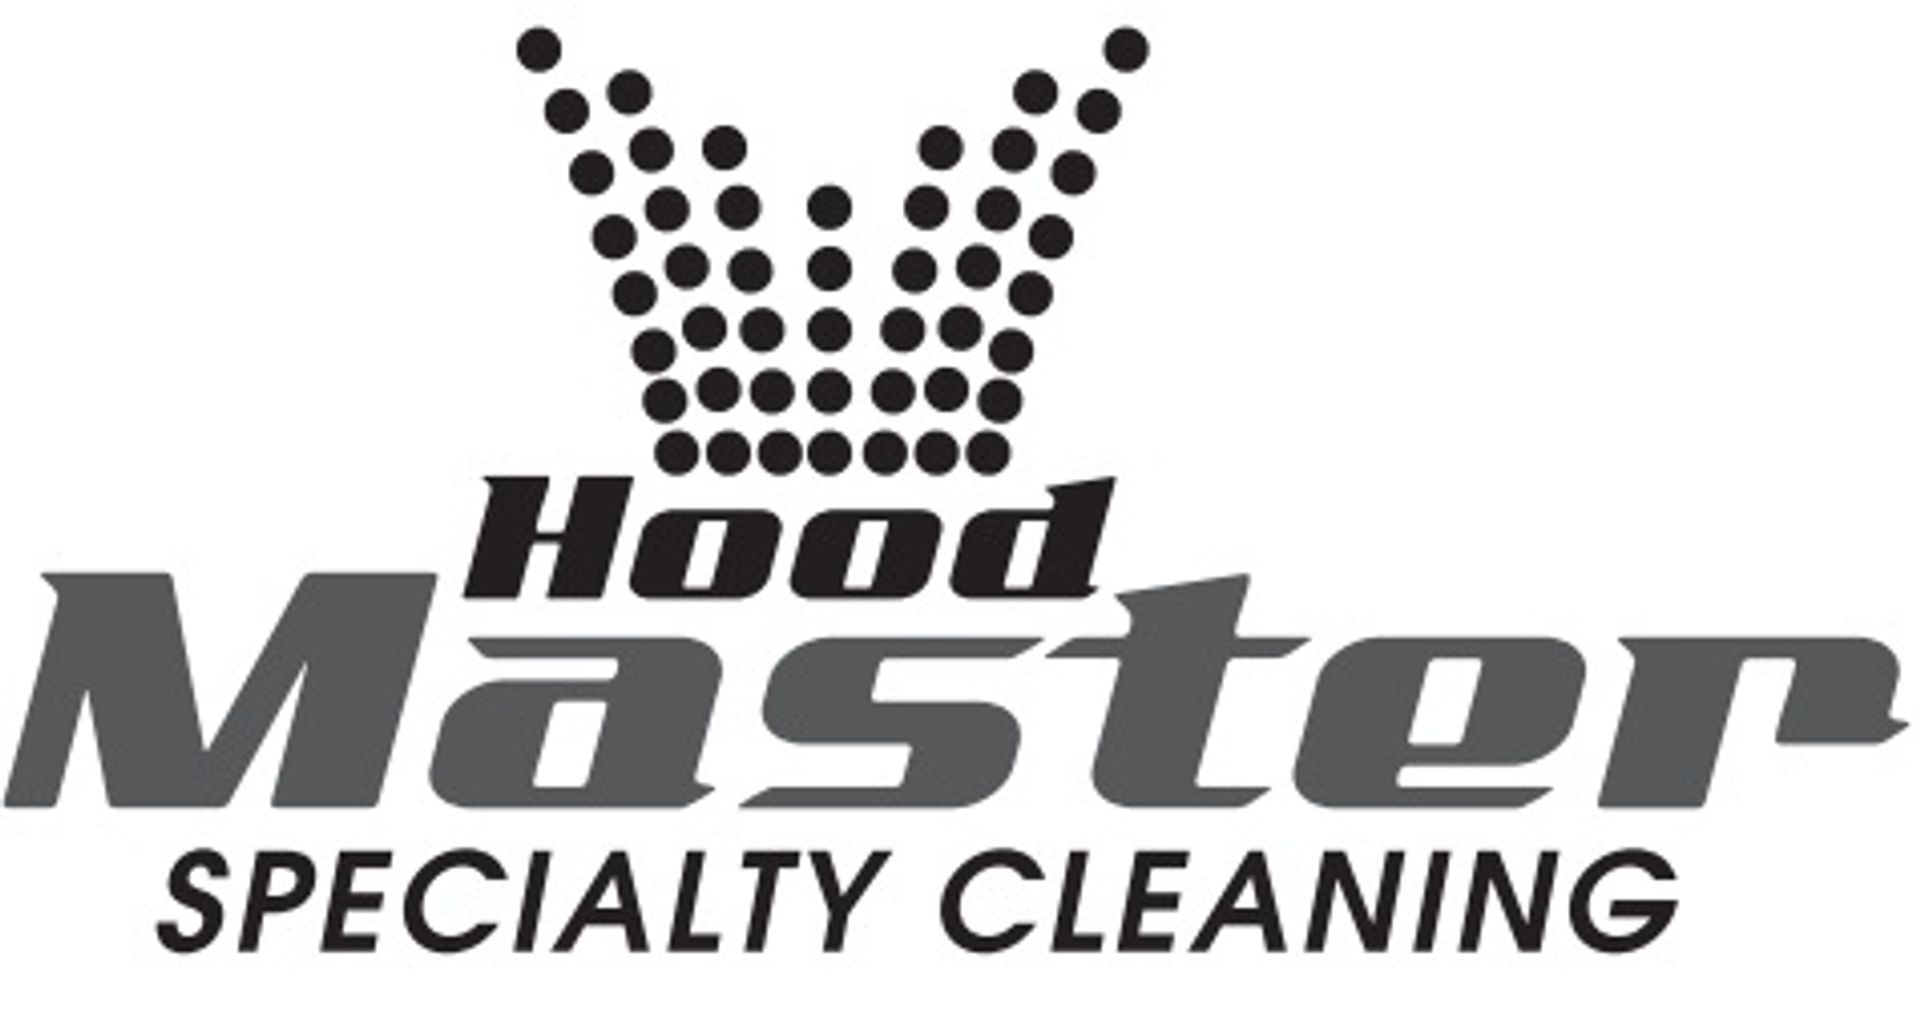 Professional Steam and Cleaning